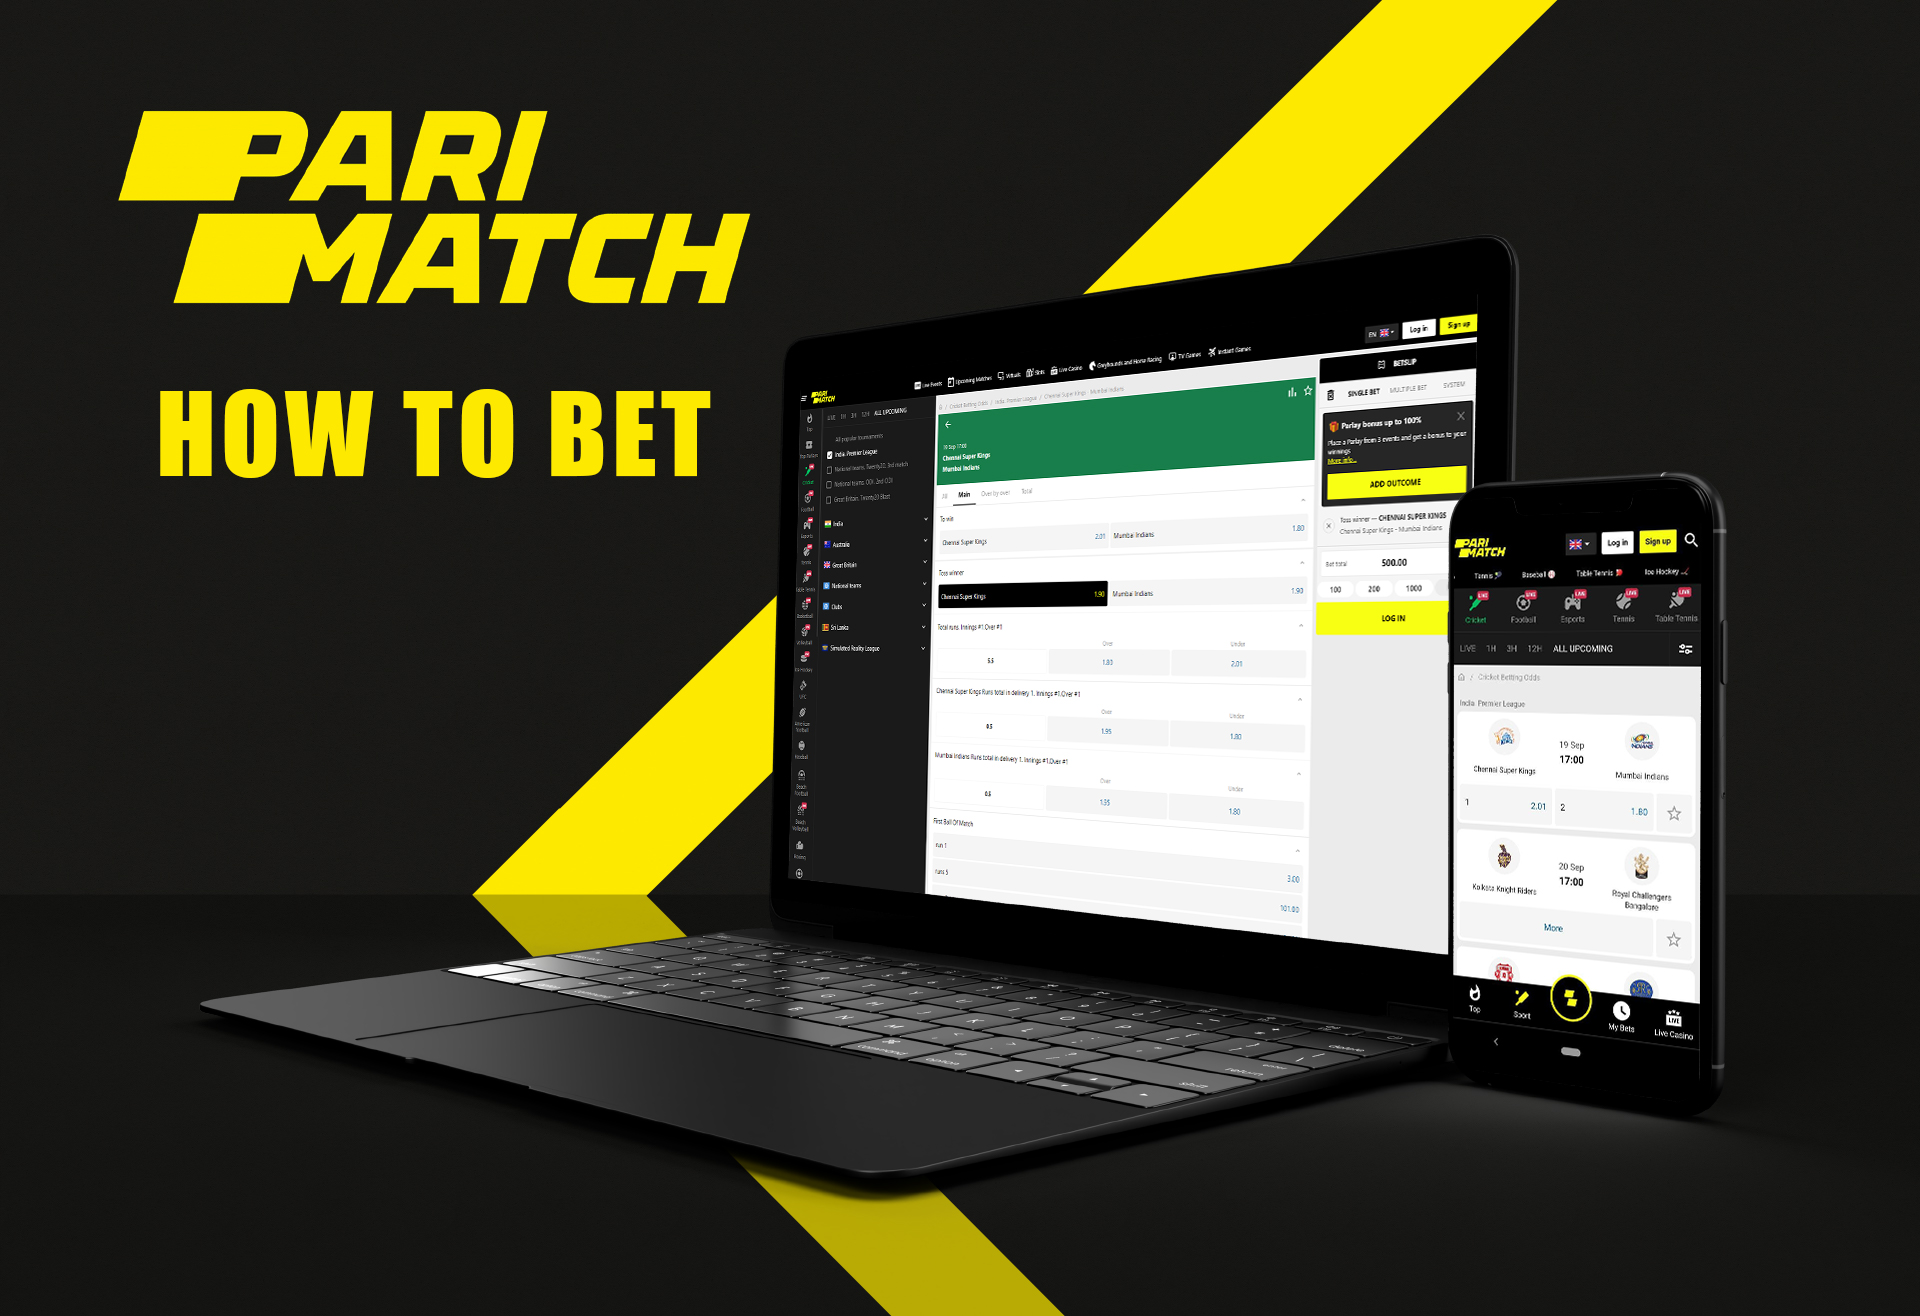 Both website and mobile apps are available for betting anytime and anywhere.